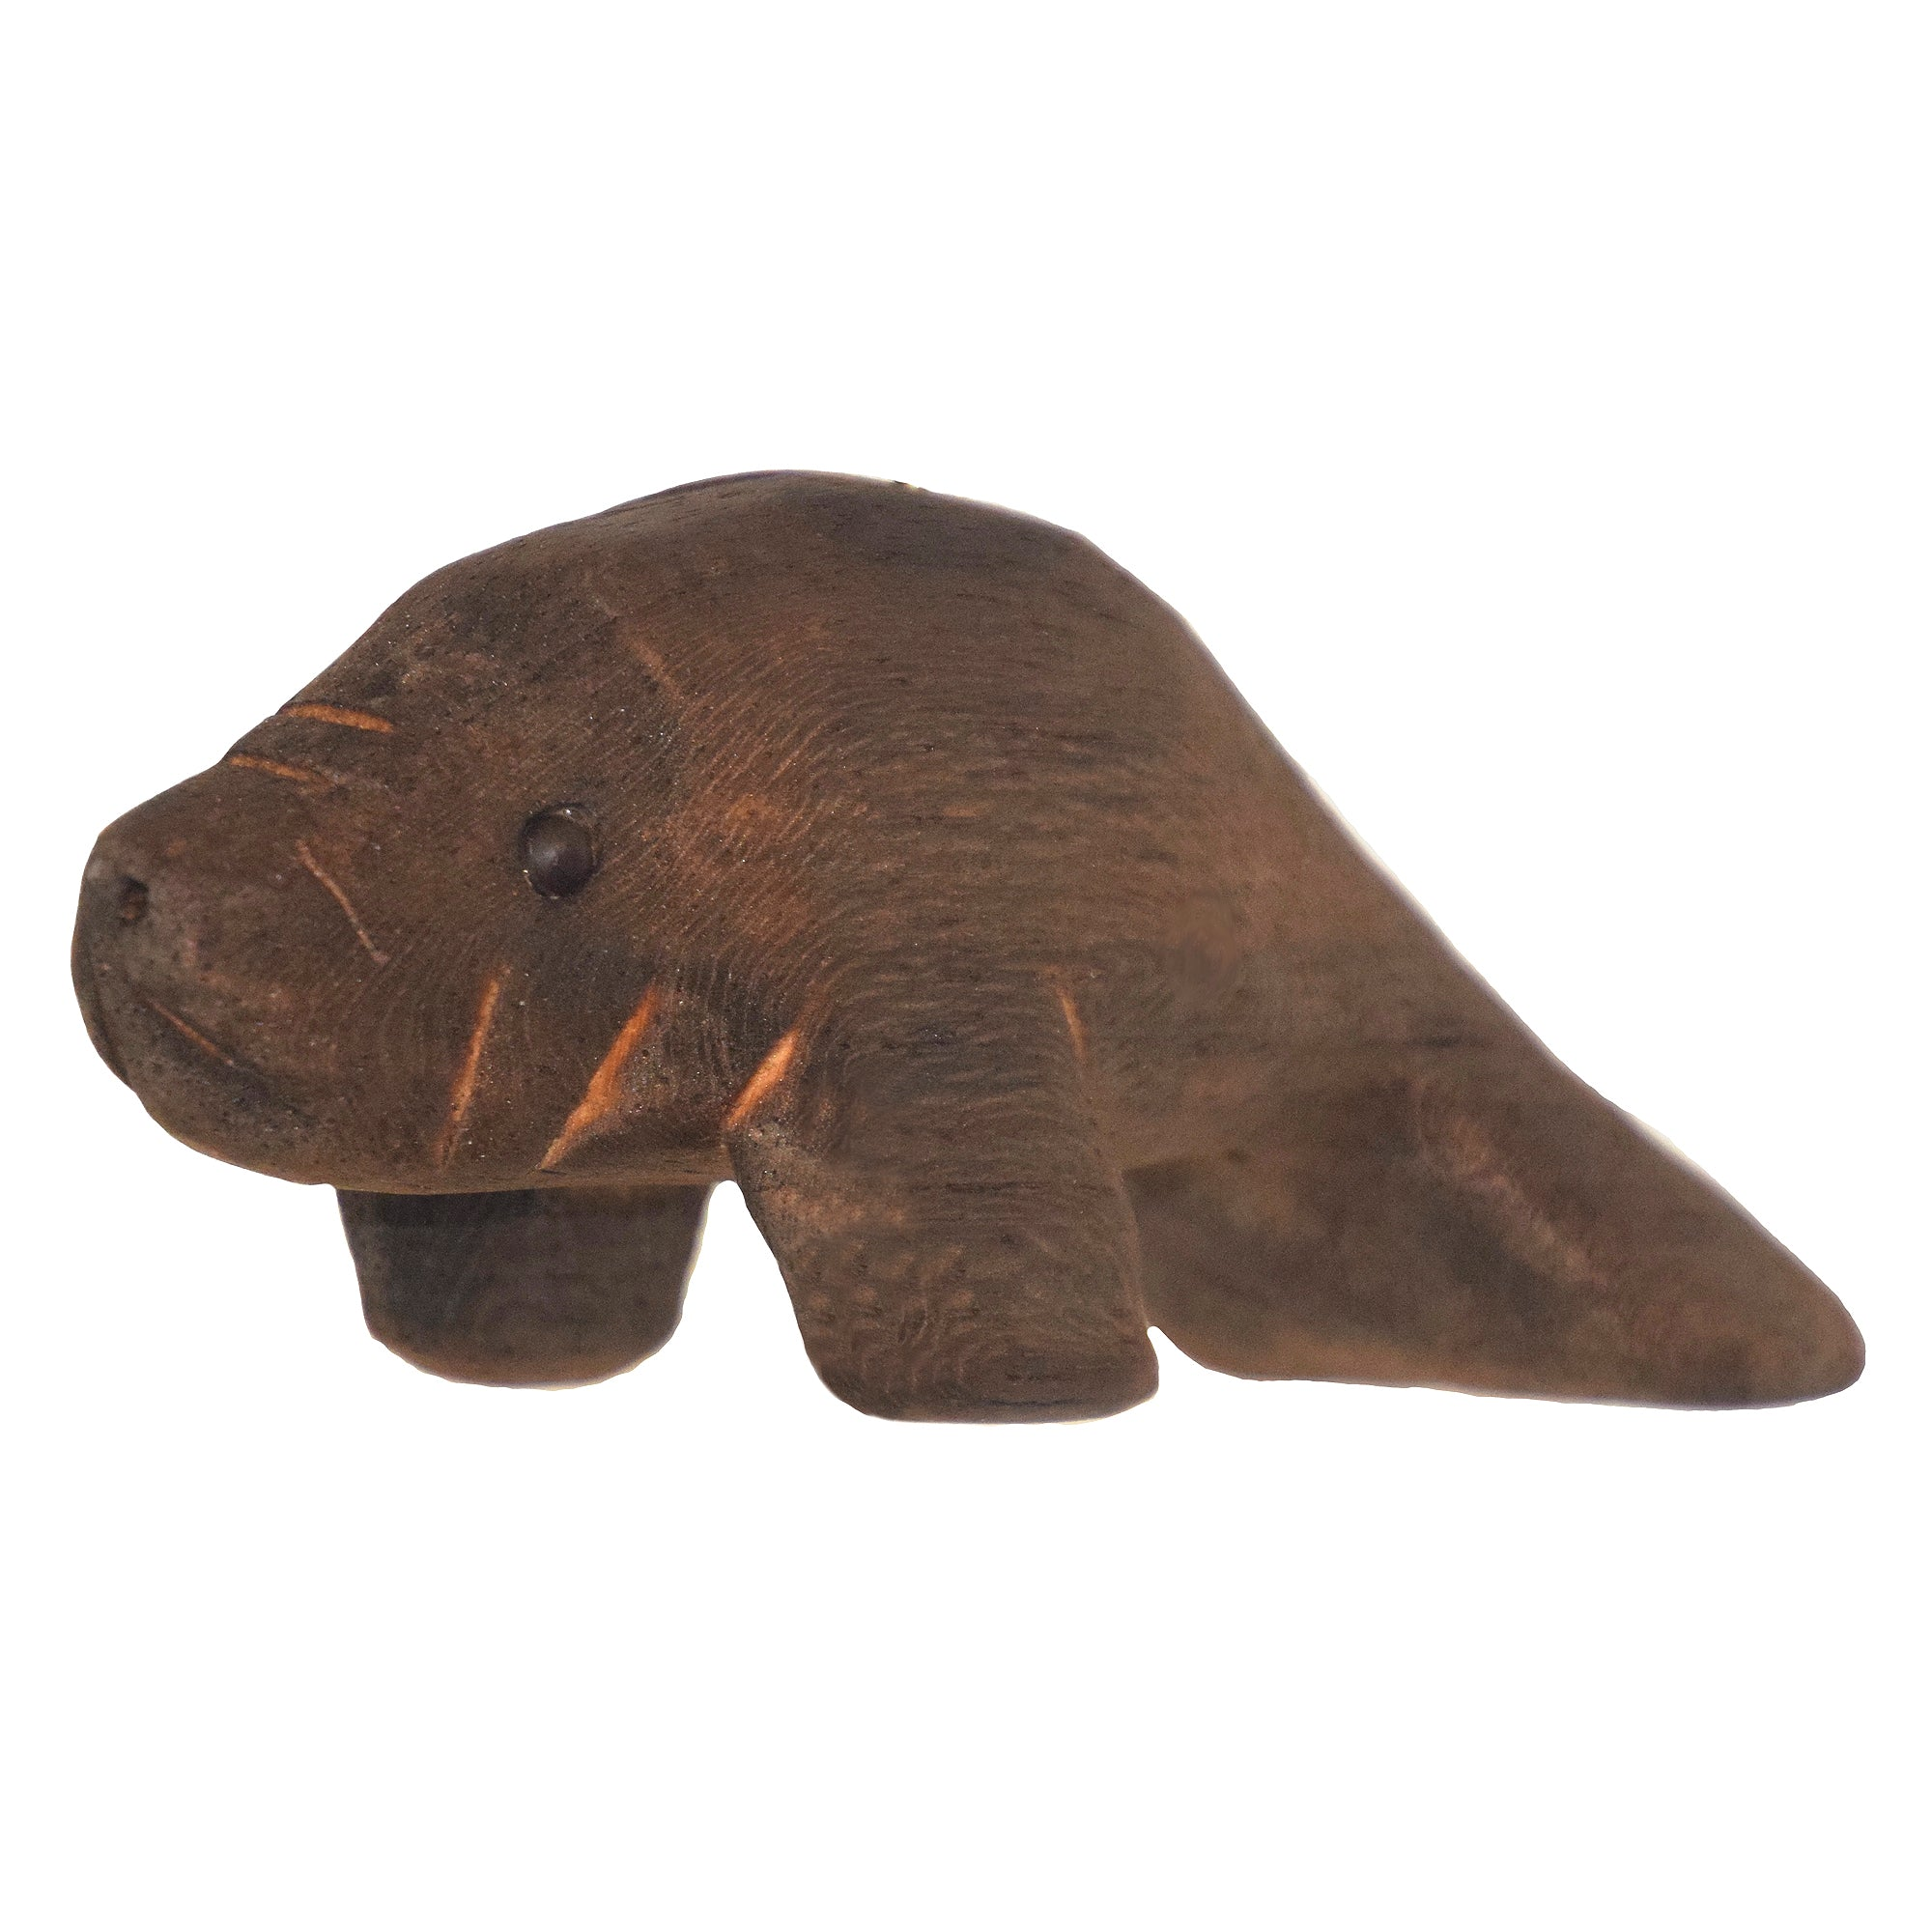 MANATEE BALSA WOOD FAIR -TRADE ORNAMENT - CARVED BY PERUVIAN AMAZON ARTISAN